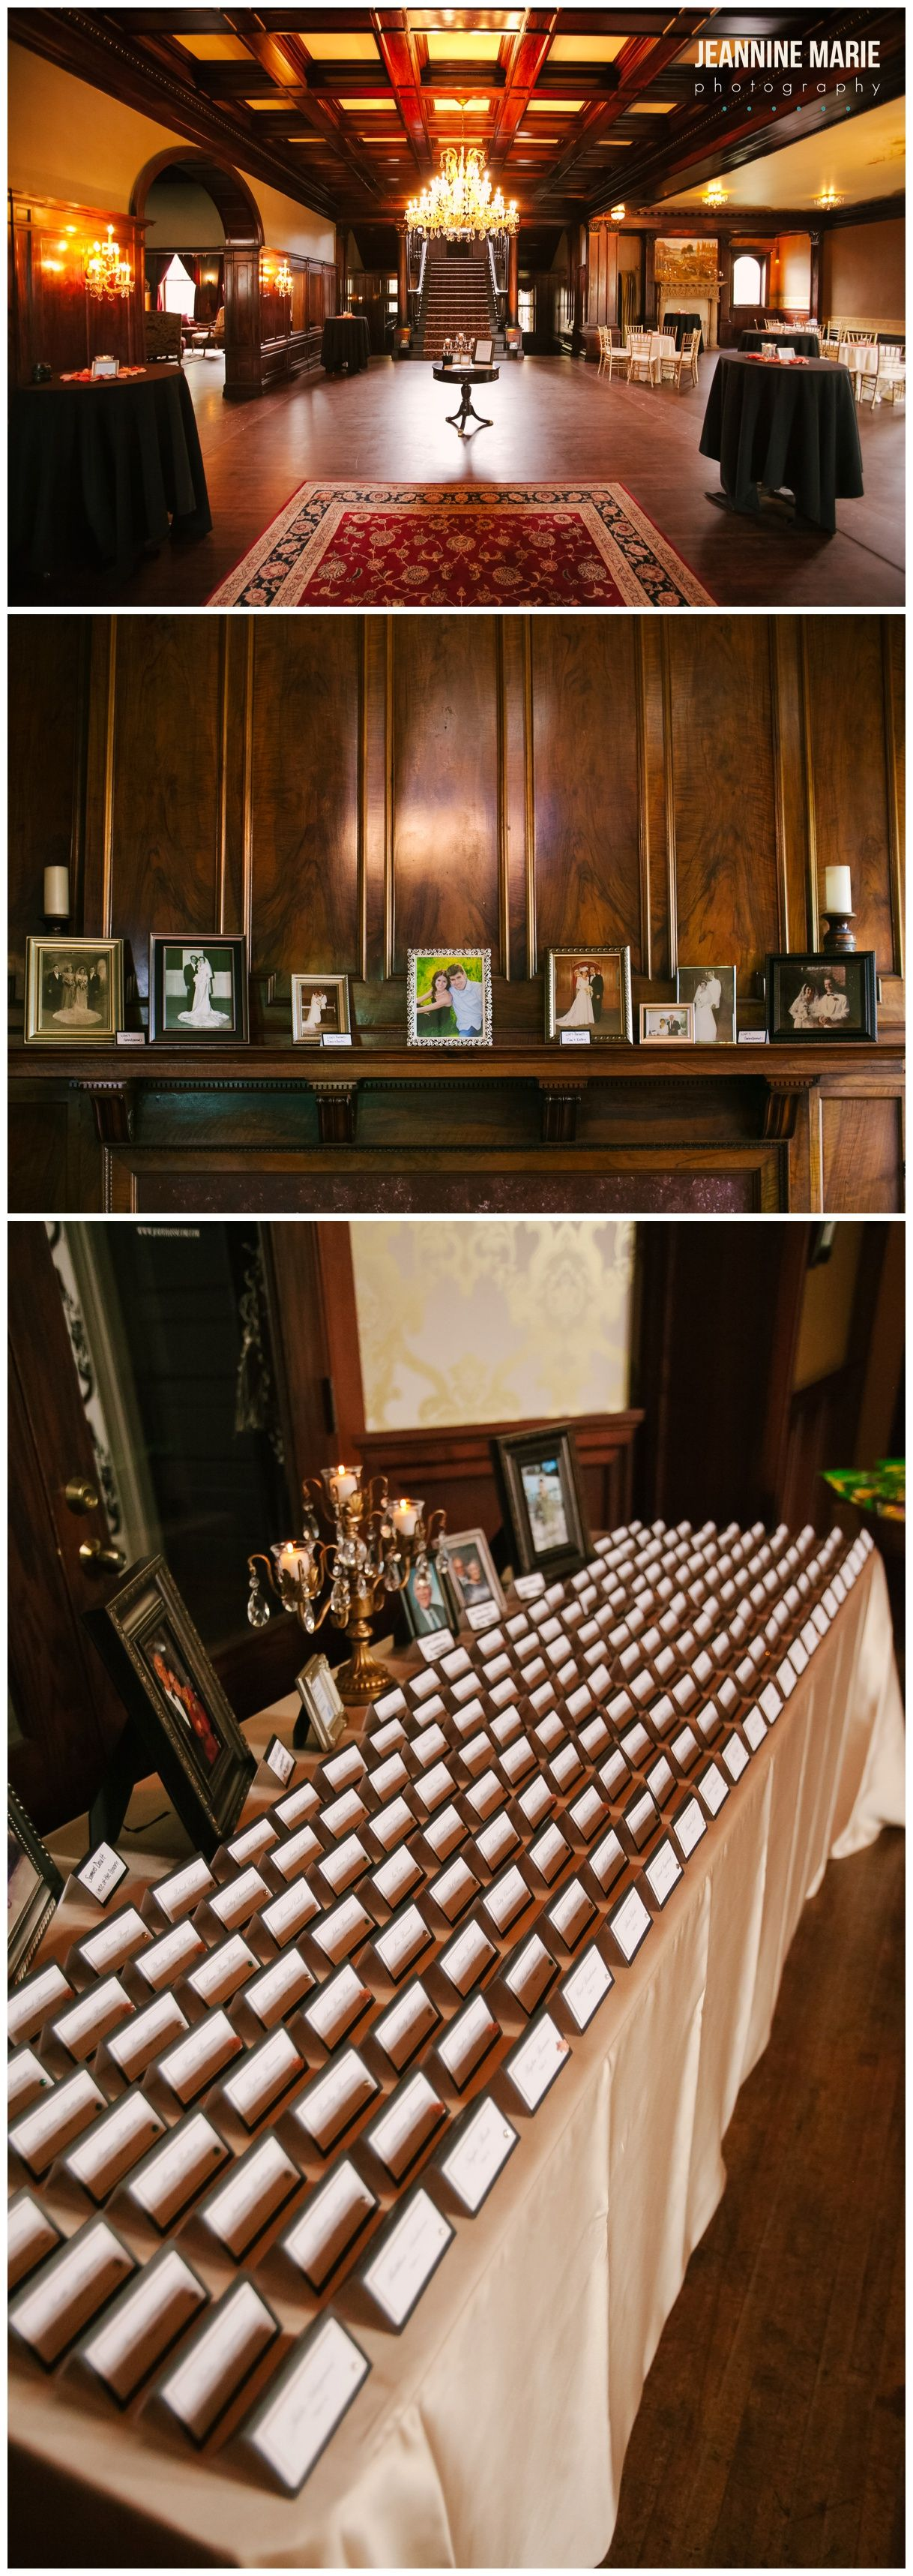 wedding reception places in twin cities%0A Semple Mansion wedding decor at Minneapolis  MN  Photos by Minnesota wedding  photographer Jeannine Marie Photography